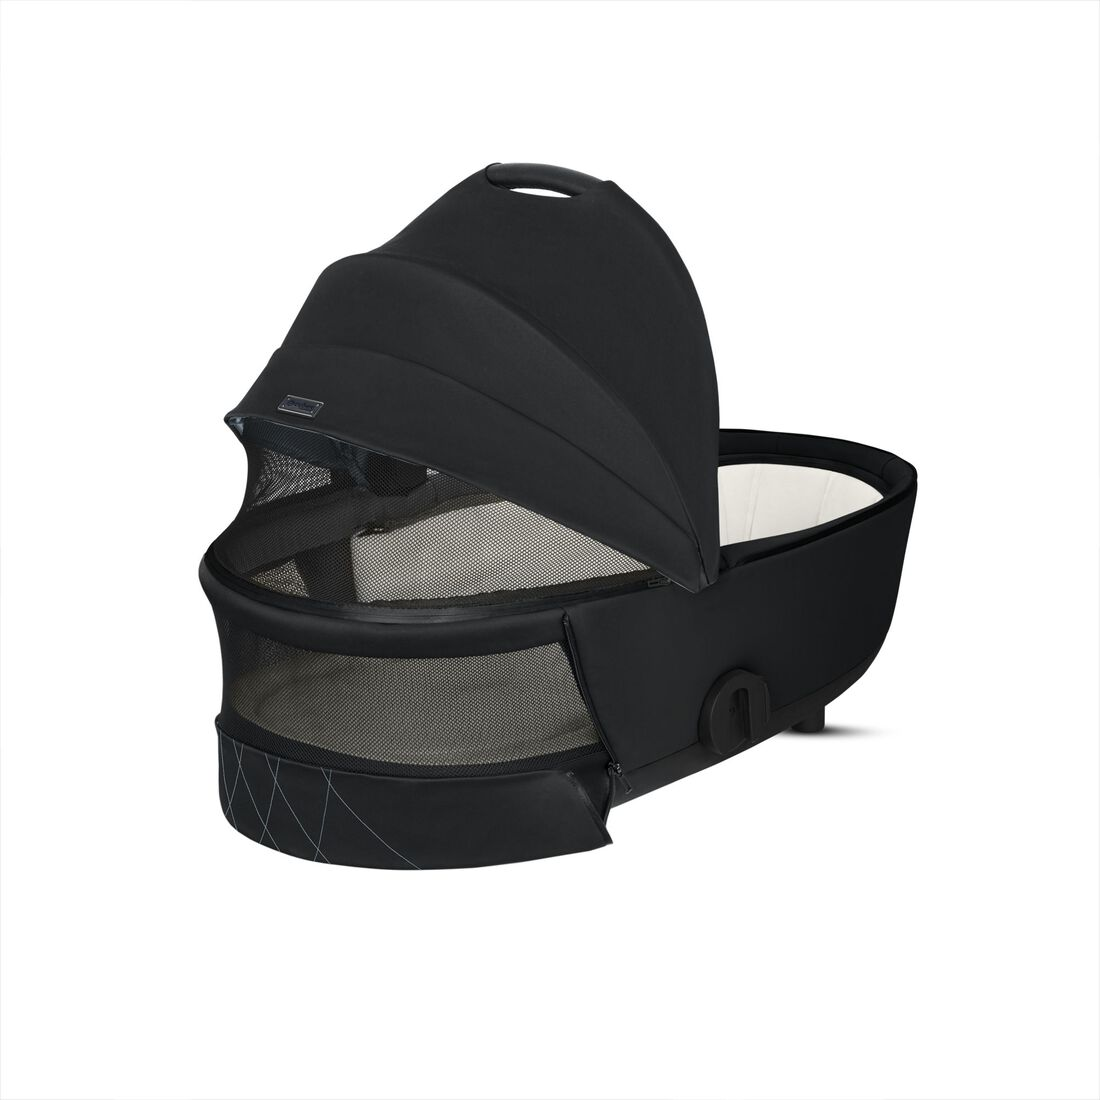 CYBEX Mios Lux Carry Cot - Deep Black in Deep Black large image number 4